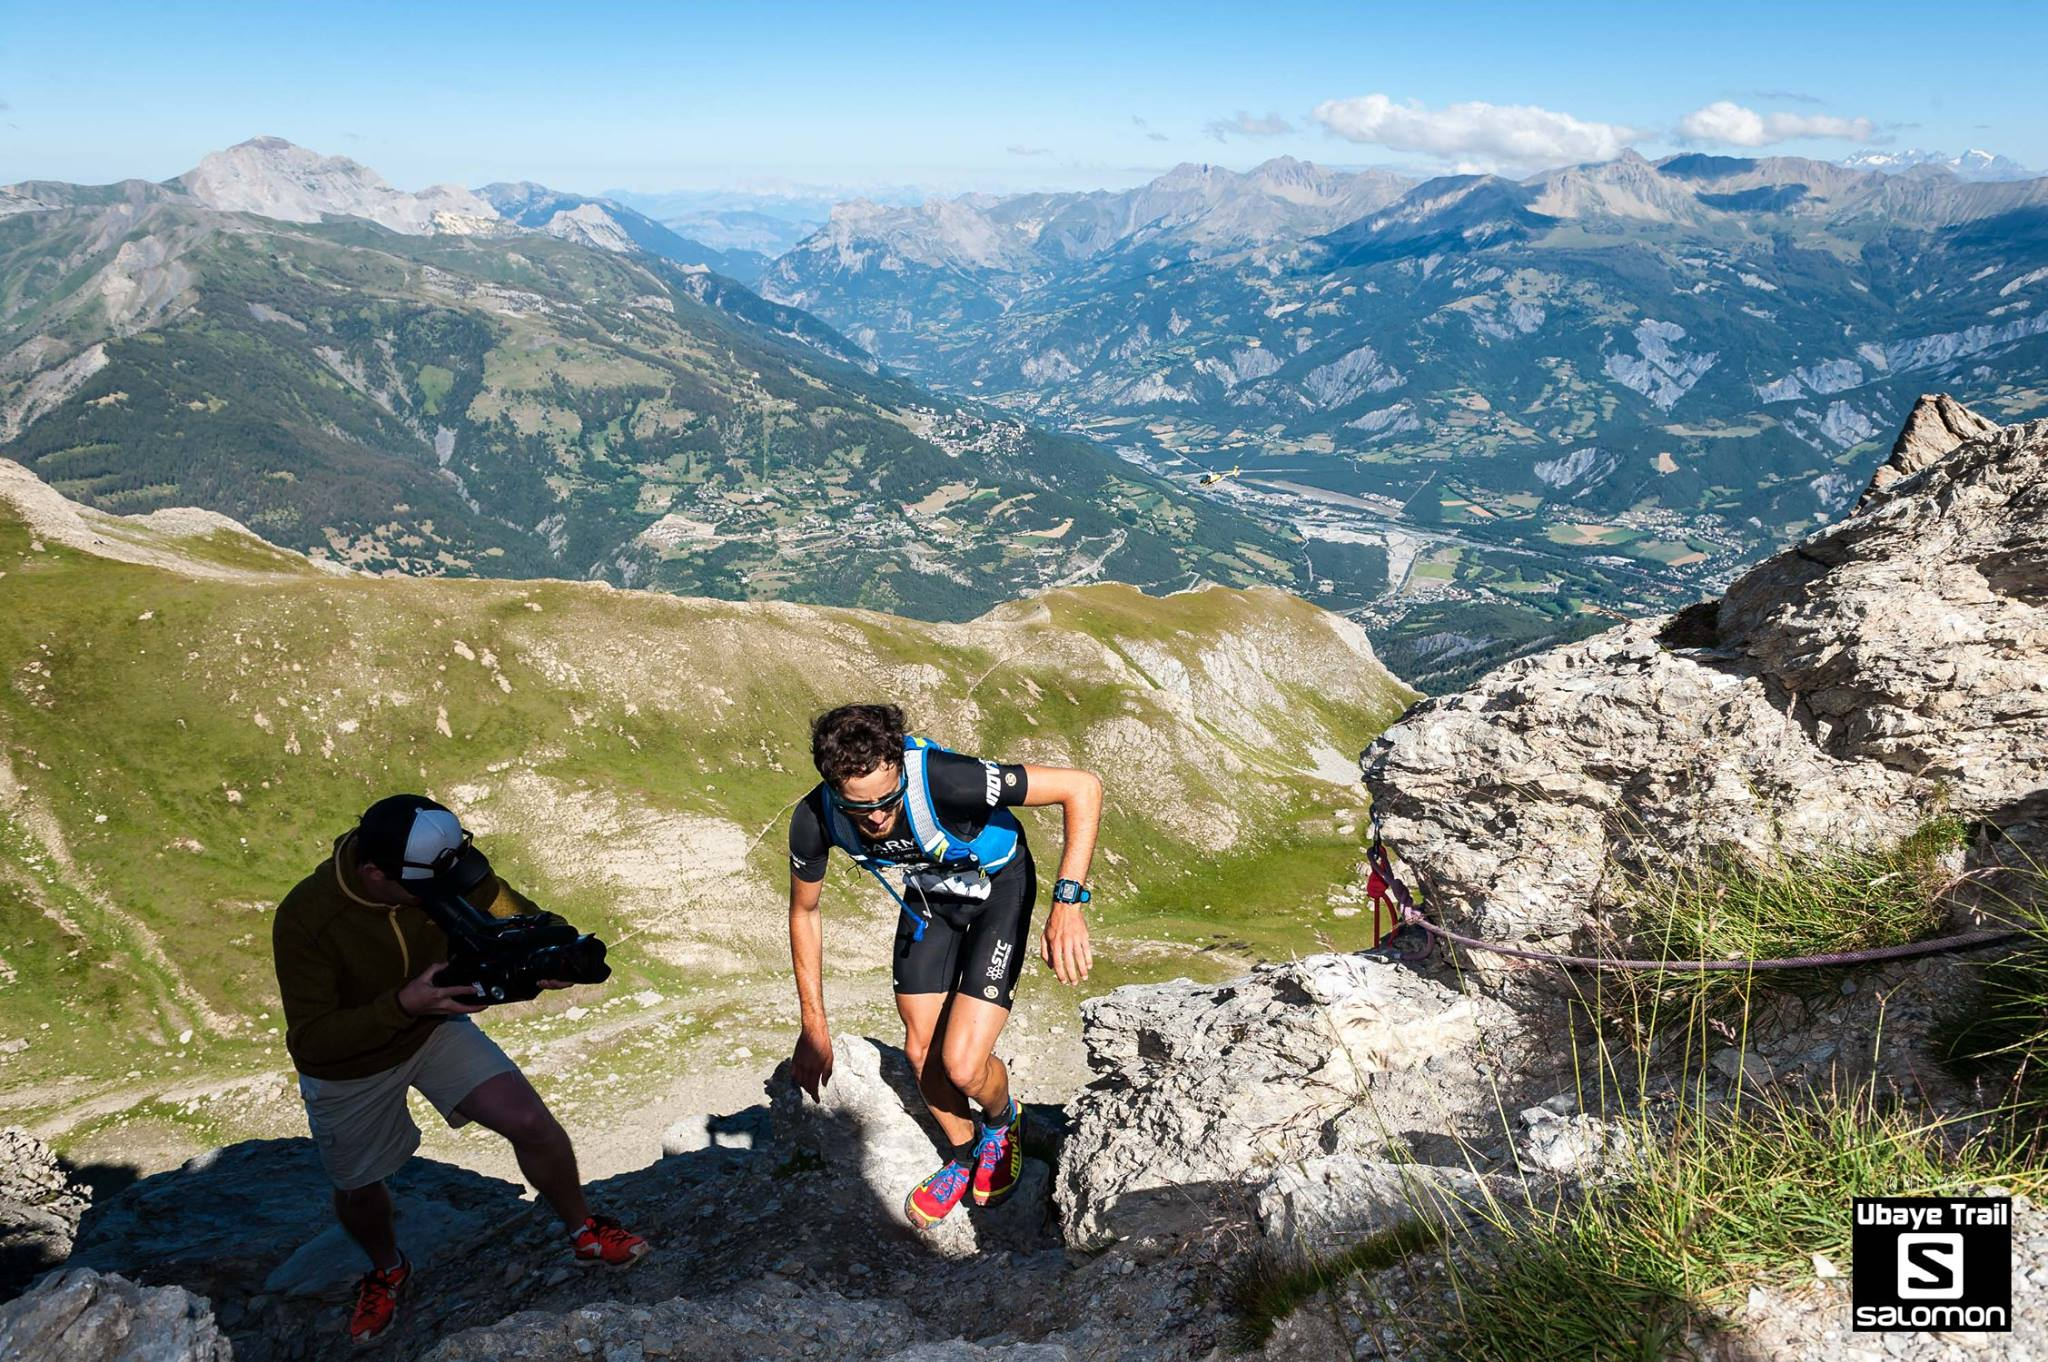 13987362 1031230686925745 1984875839817389421 o - NATIONAL : RESULTATS ET VIDEO DE L'UBAYE TRAIL SALOMON